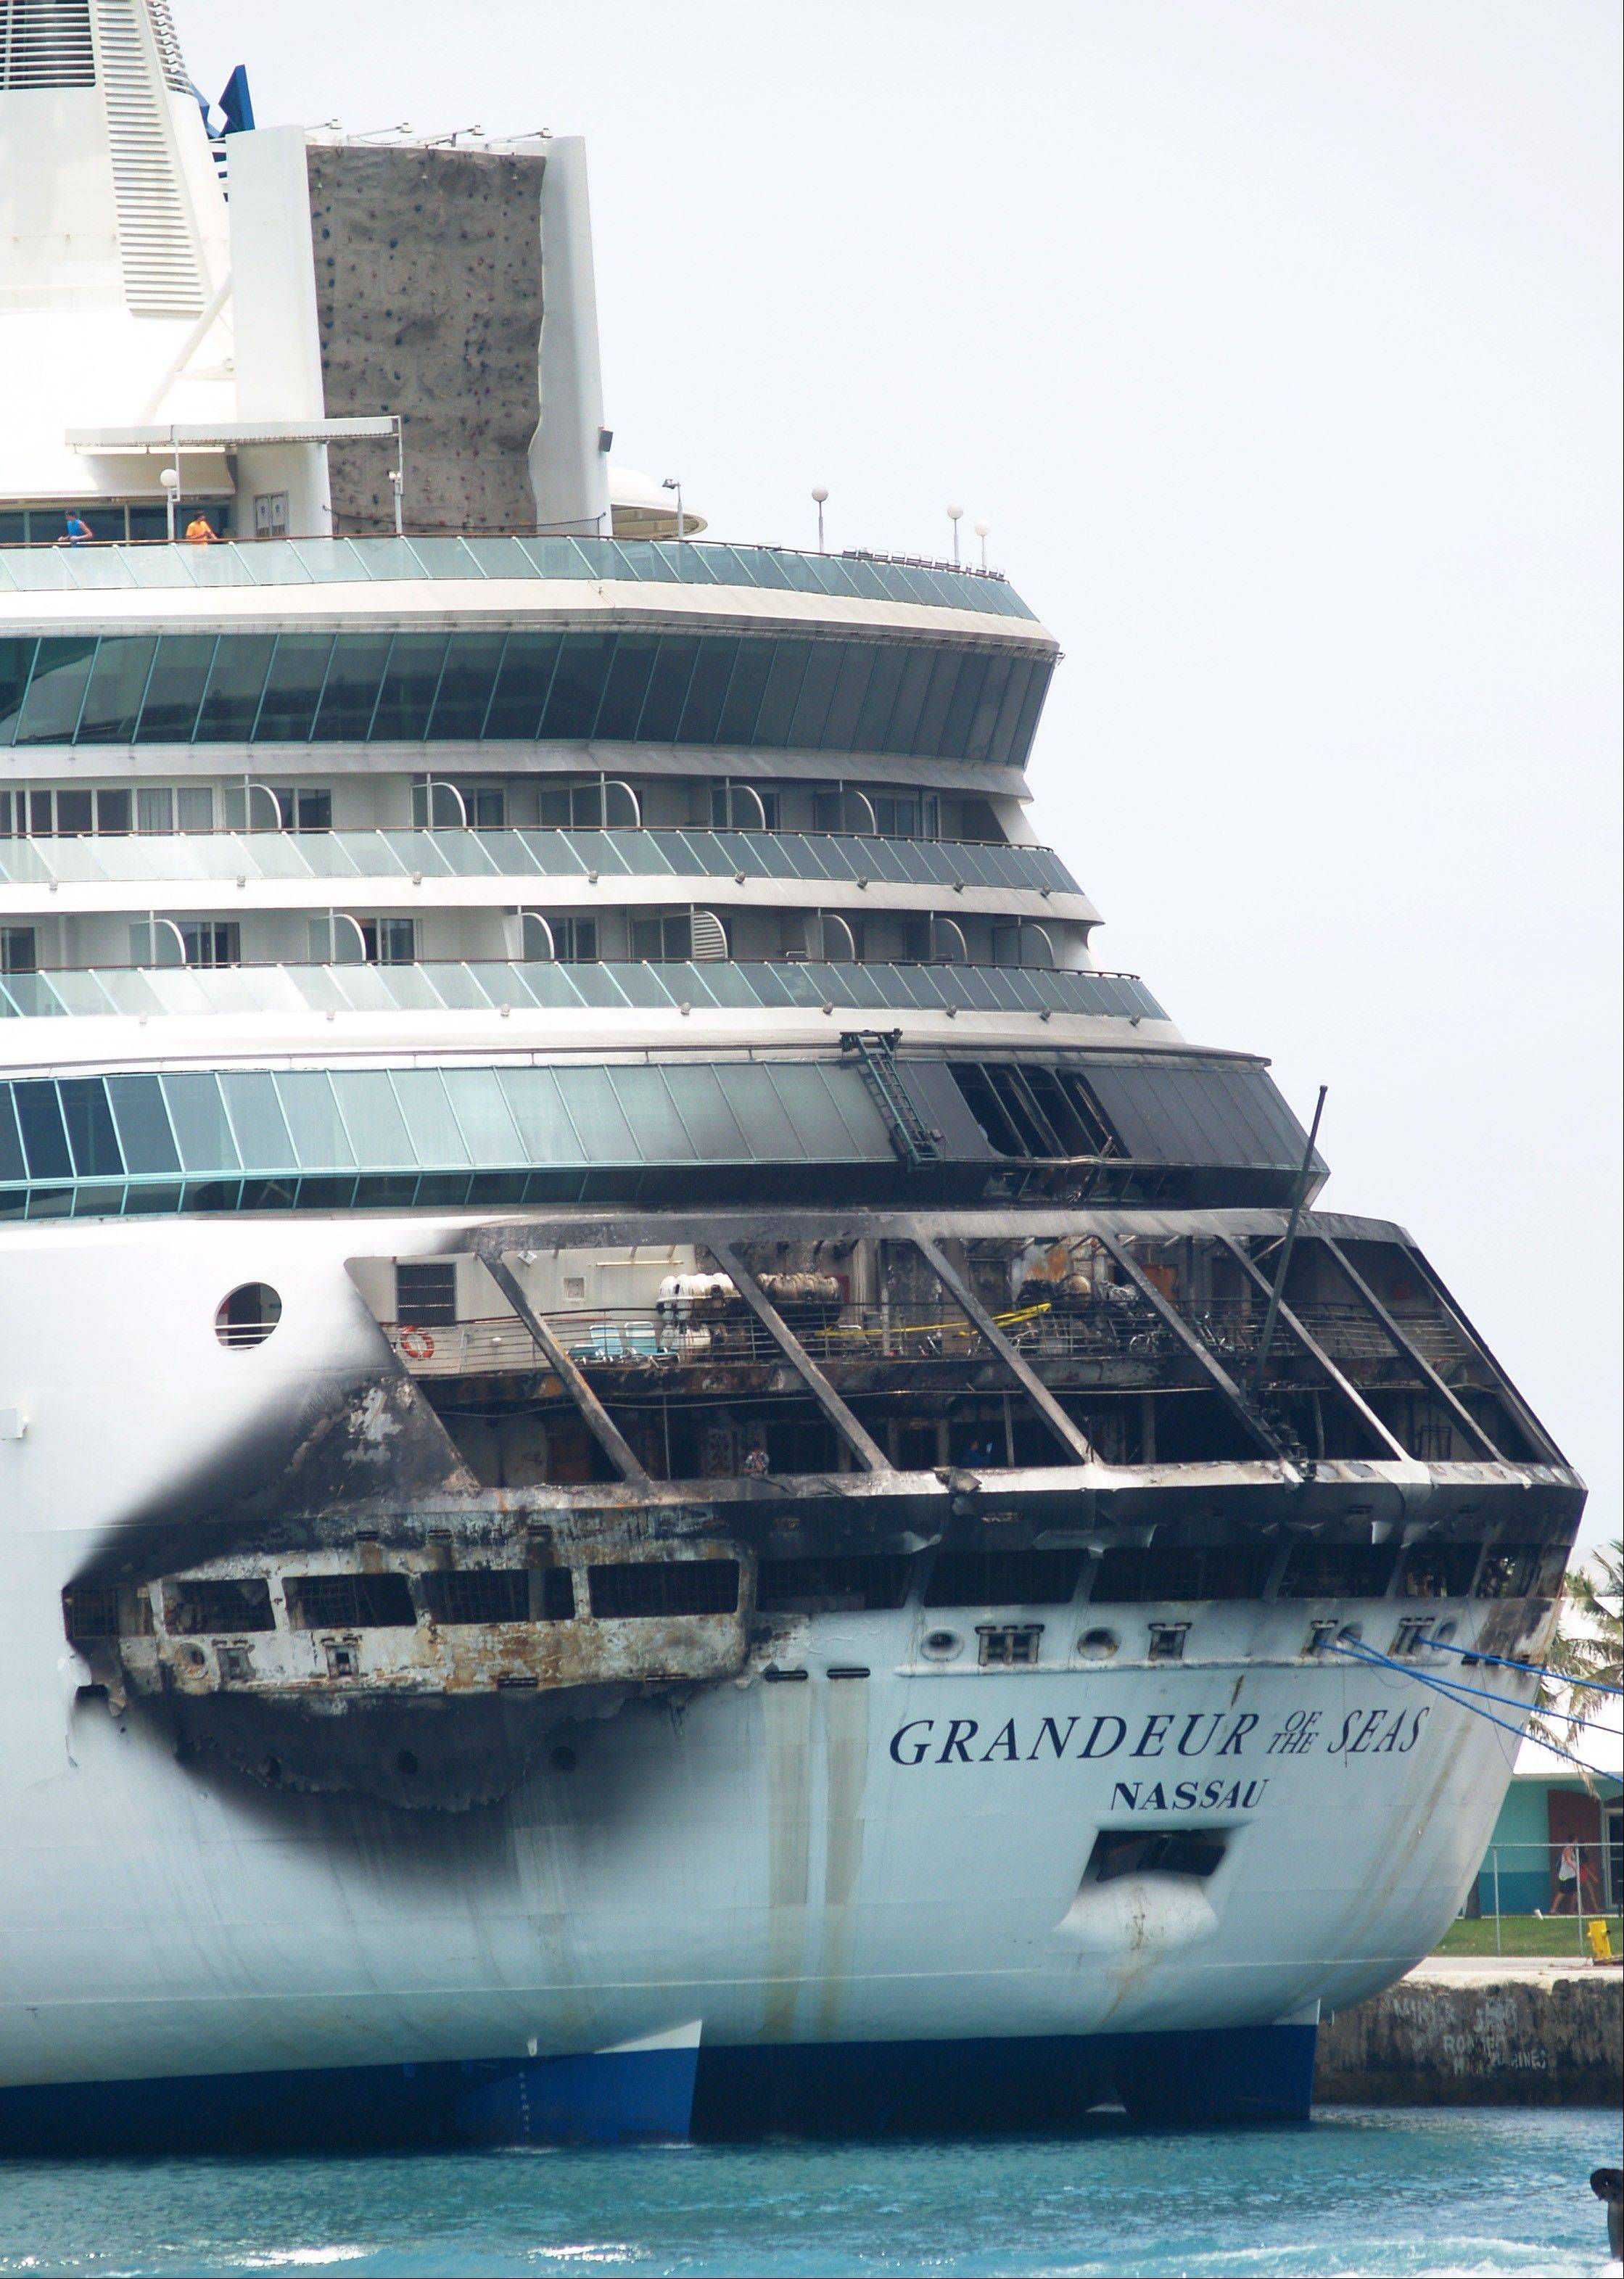 The fire-damaged exterior of Royal Caribbean's Grandeur of the Seas cruise ship is seen while docked in Freeport, Grand Bahama island, Monday. Royal Caribbean said the fire occurred early Monday while on route from Baltimore to the Bahamas on the mooring area of deck 3 and was quickly extinguished. All 2,224 guests and 796 crew were safe and accounted for.